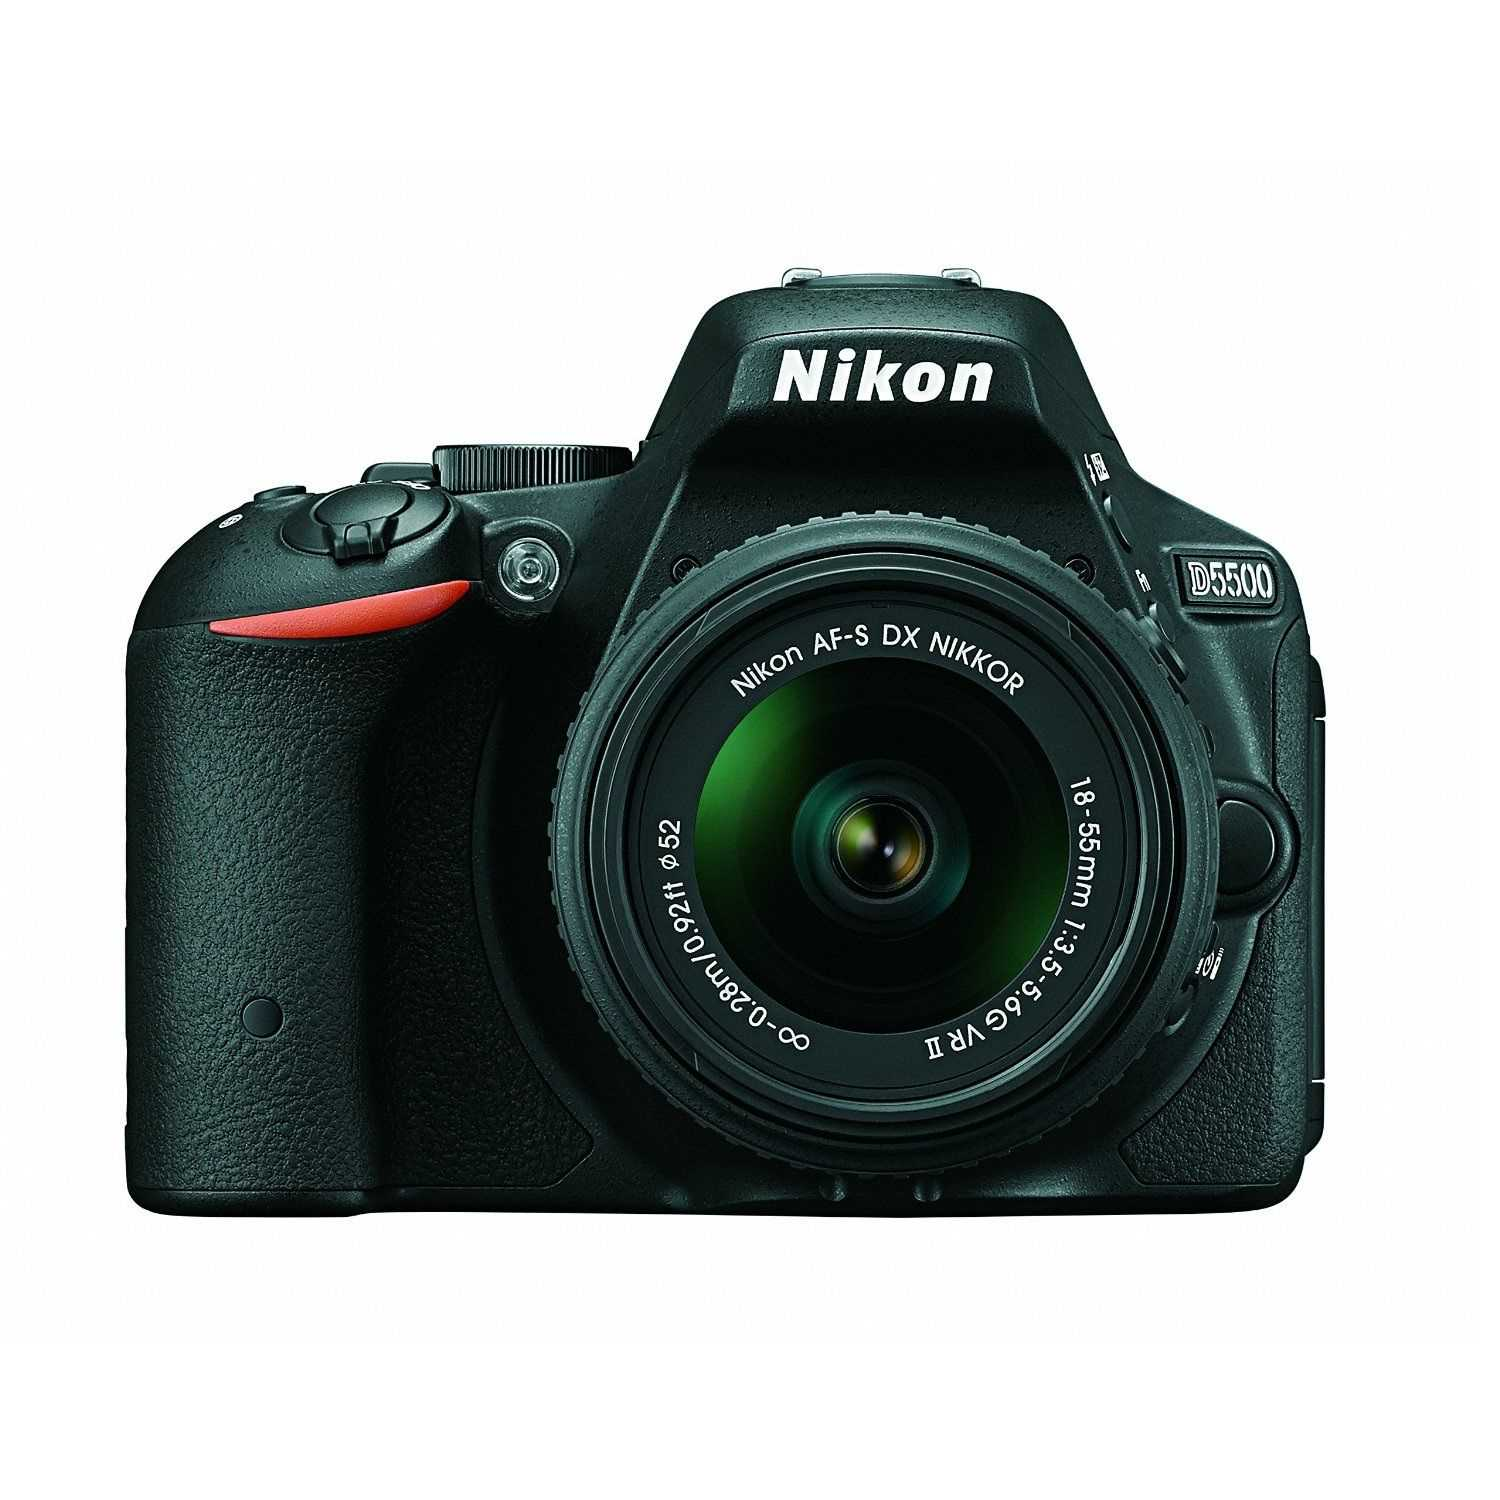 Camera Dslr Camera Price Comparison camera price list in india 2017 compare dslr digital cameras prices nikon d5500 18 55 mm lens